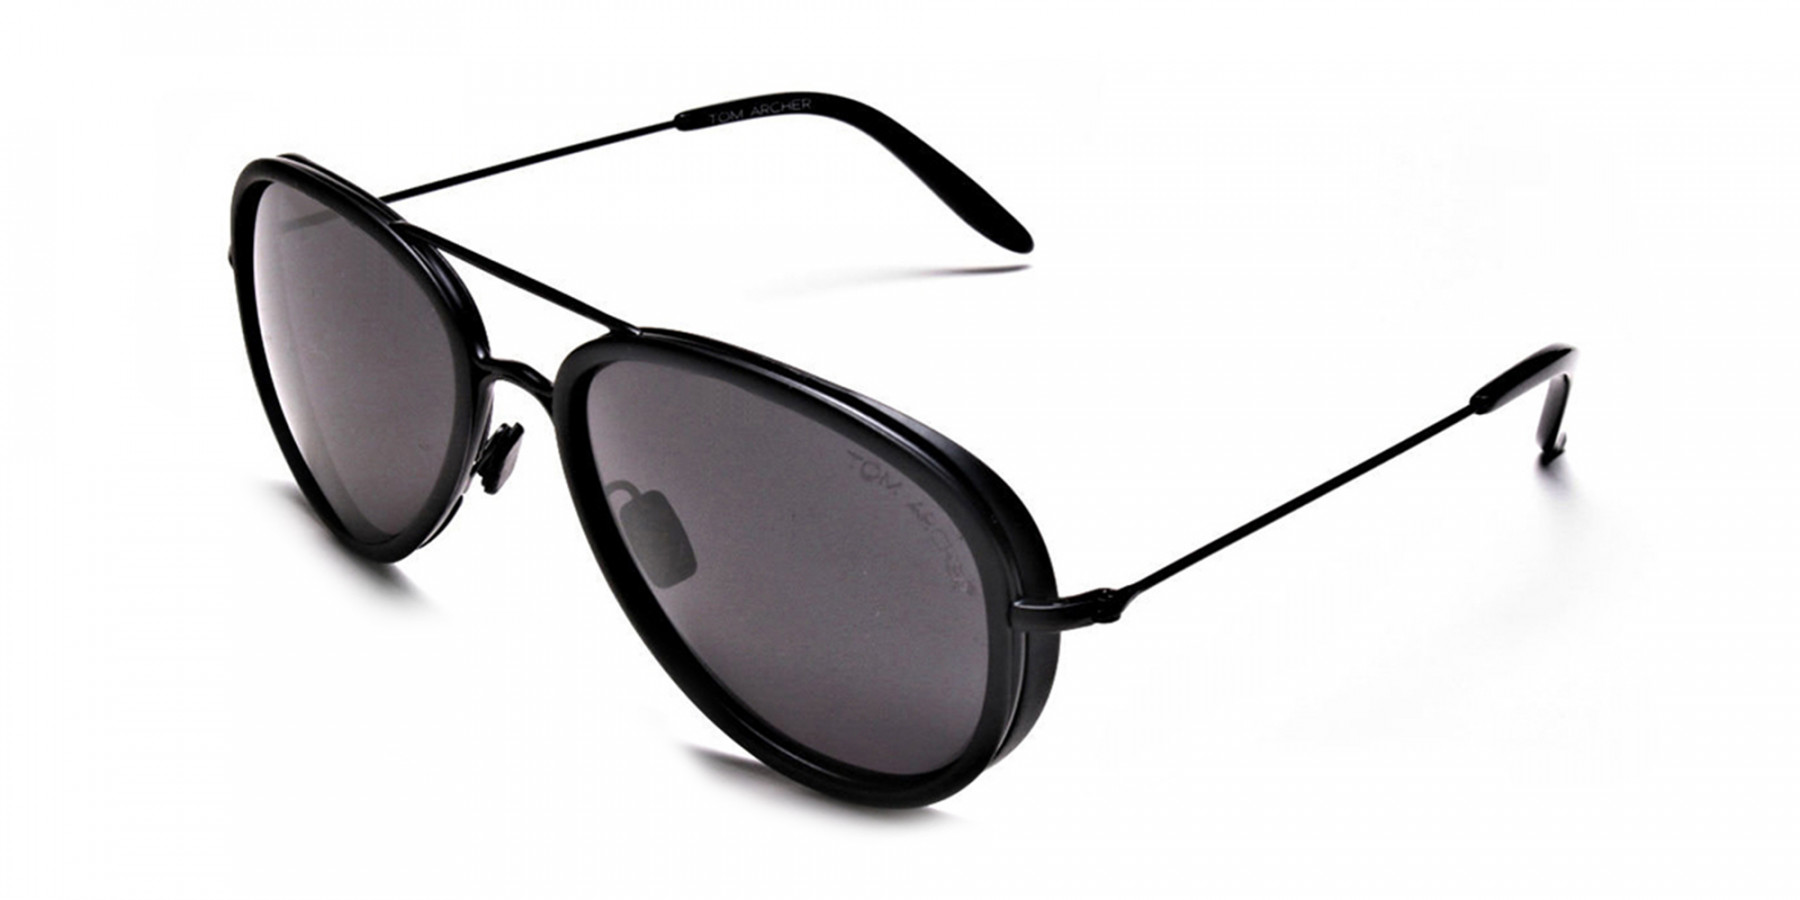 Look Cool Sunglasses for Men and Women -2